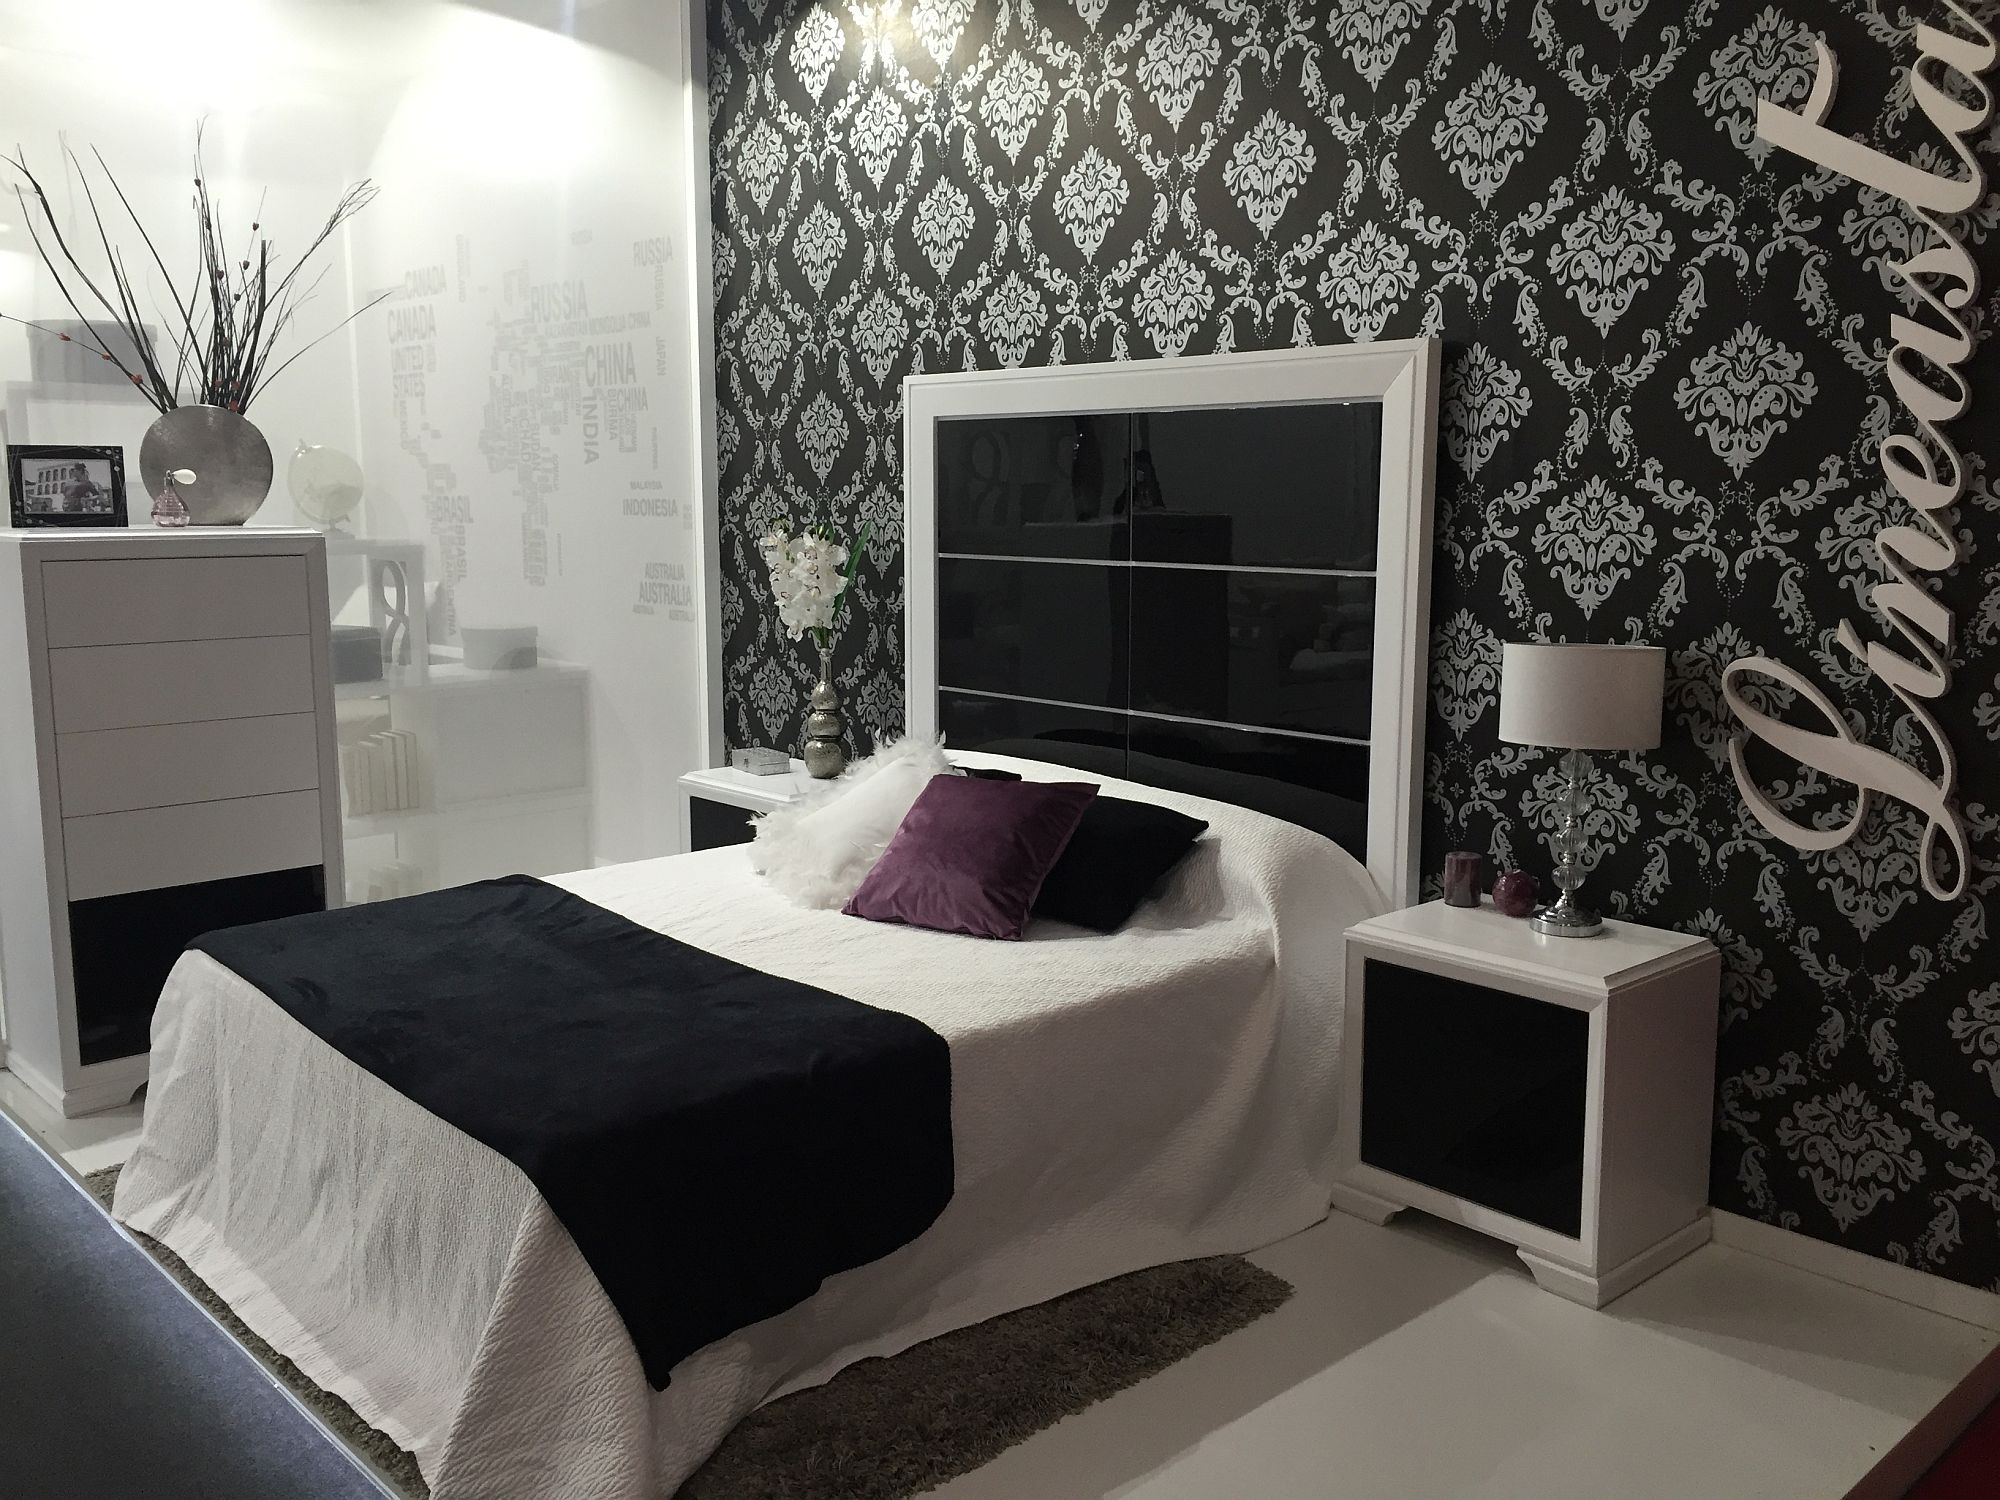 Black and white bed with a glossy, dramatic headboard